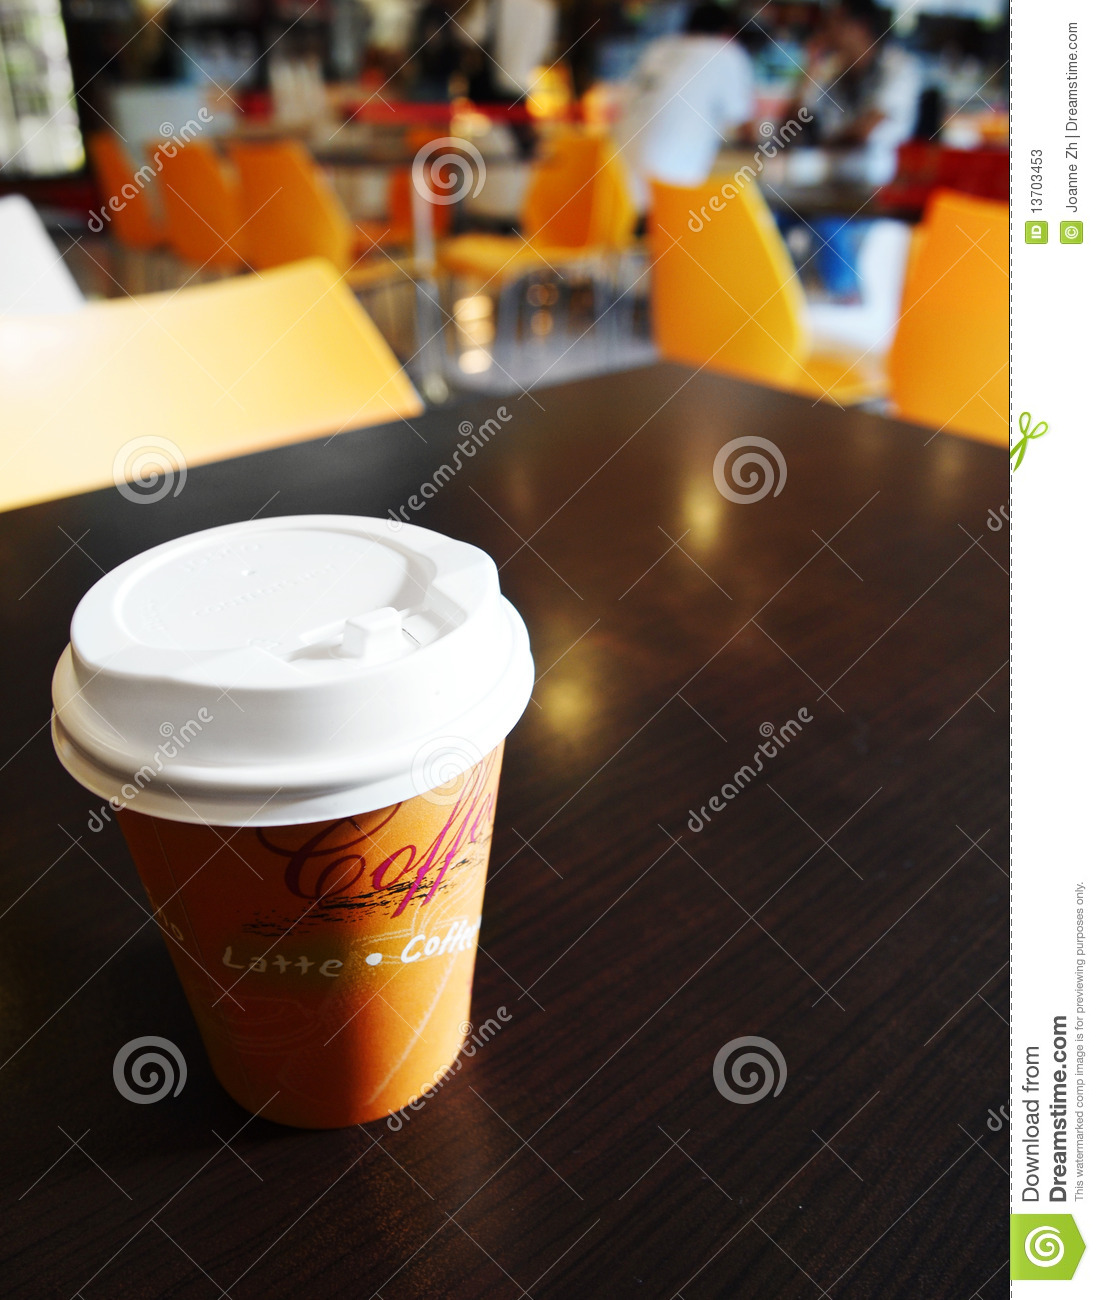 Coffee takeout cup on campus cafe table